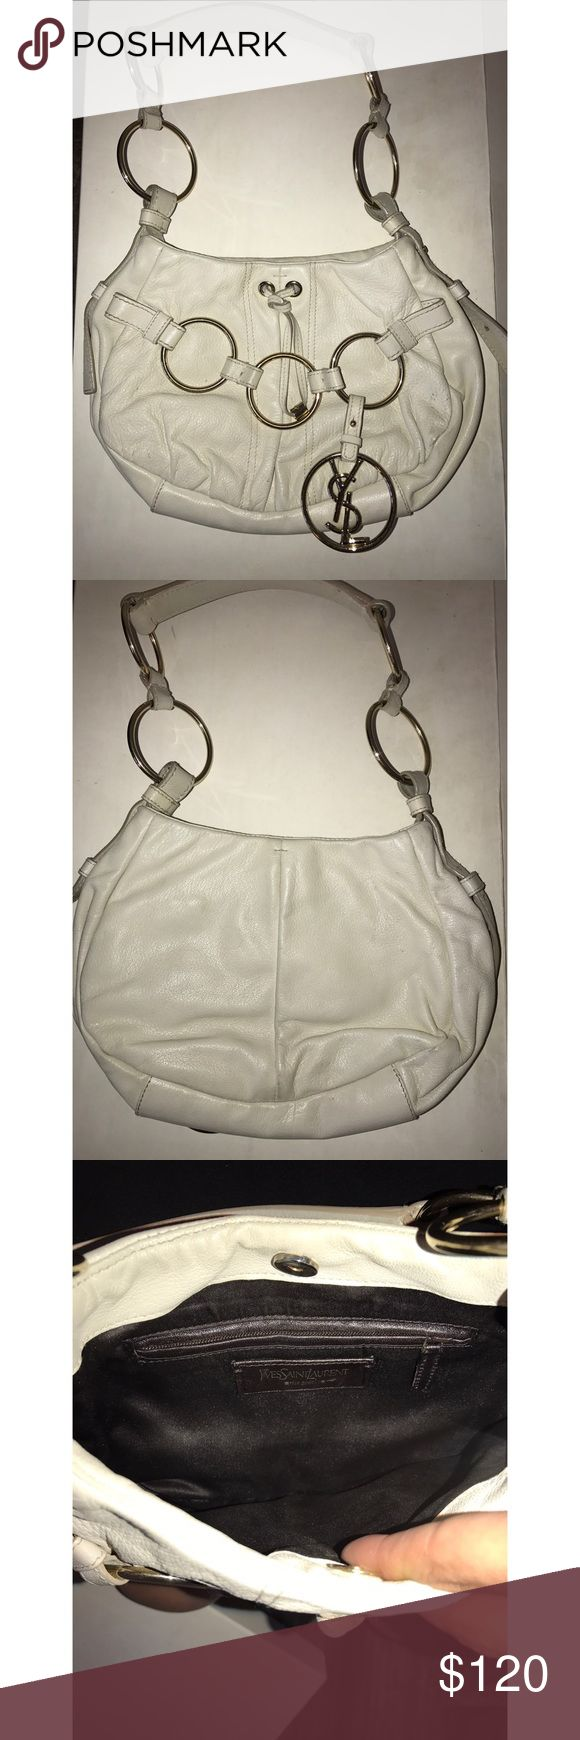 White Leather Yves Saint Laurent Purse Great condition YSL White leather purse! Yves Saint Laurent Bags Shoulder Bags